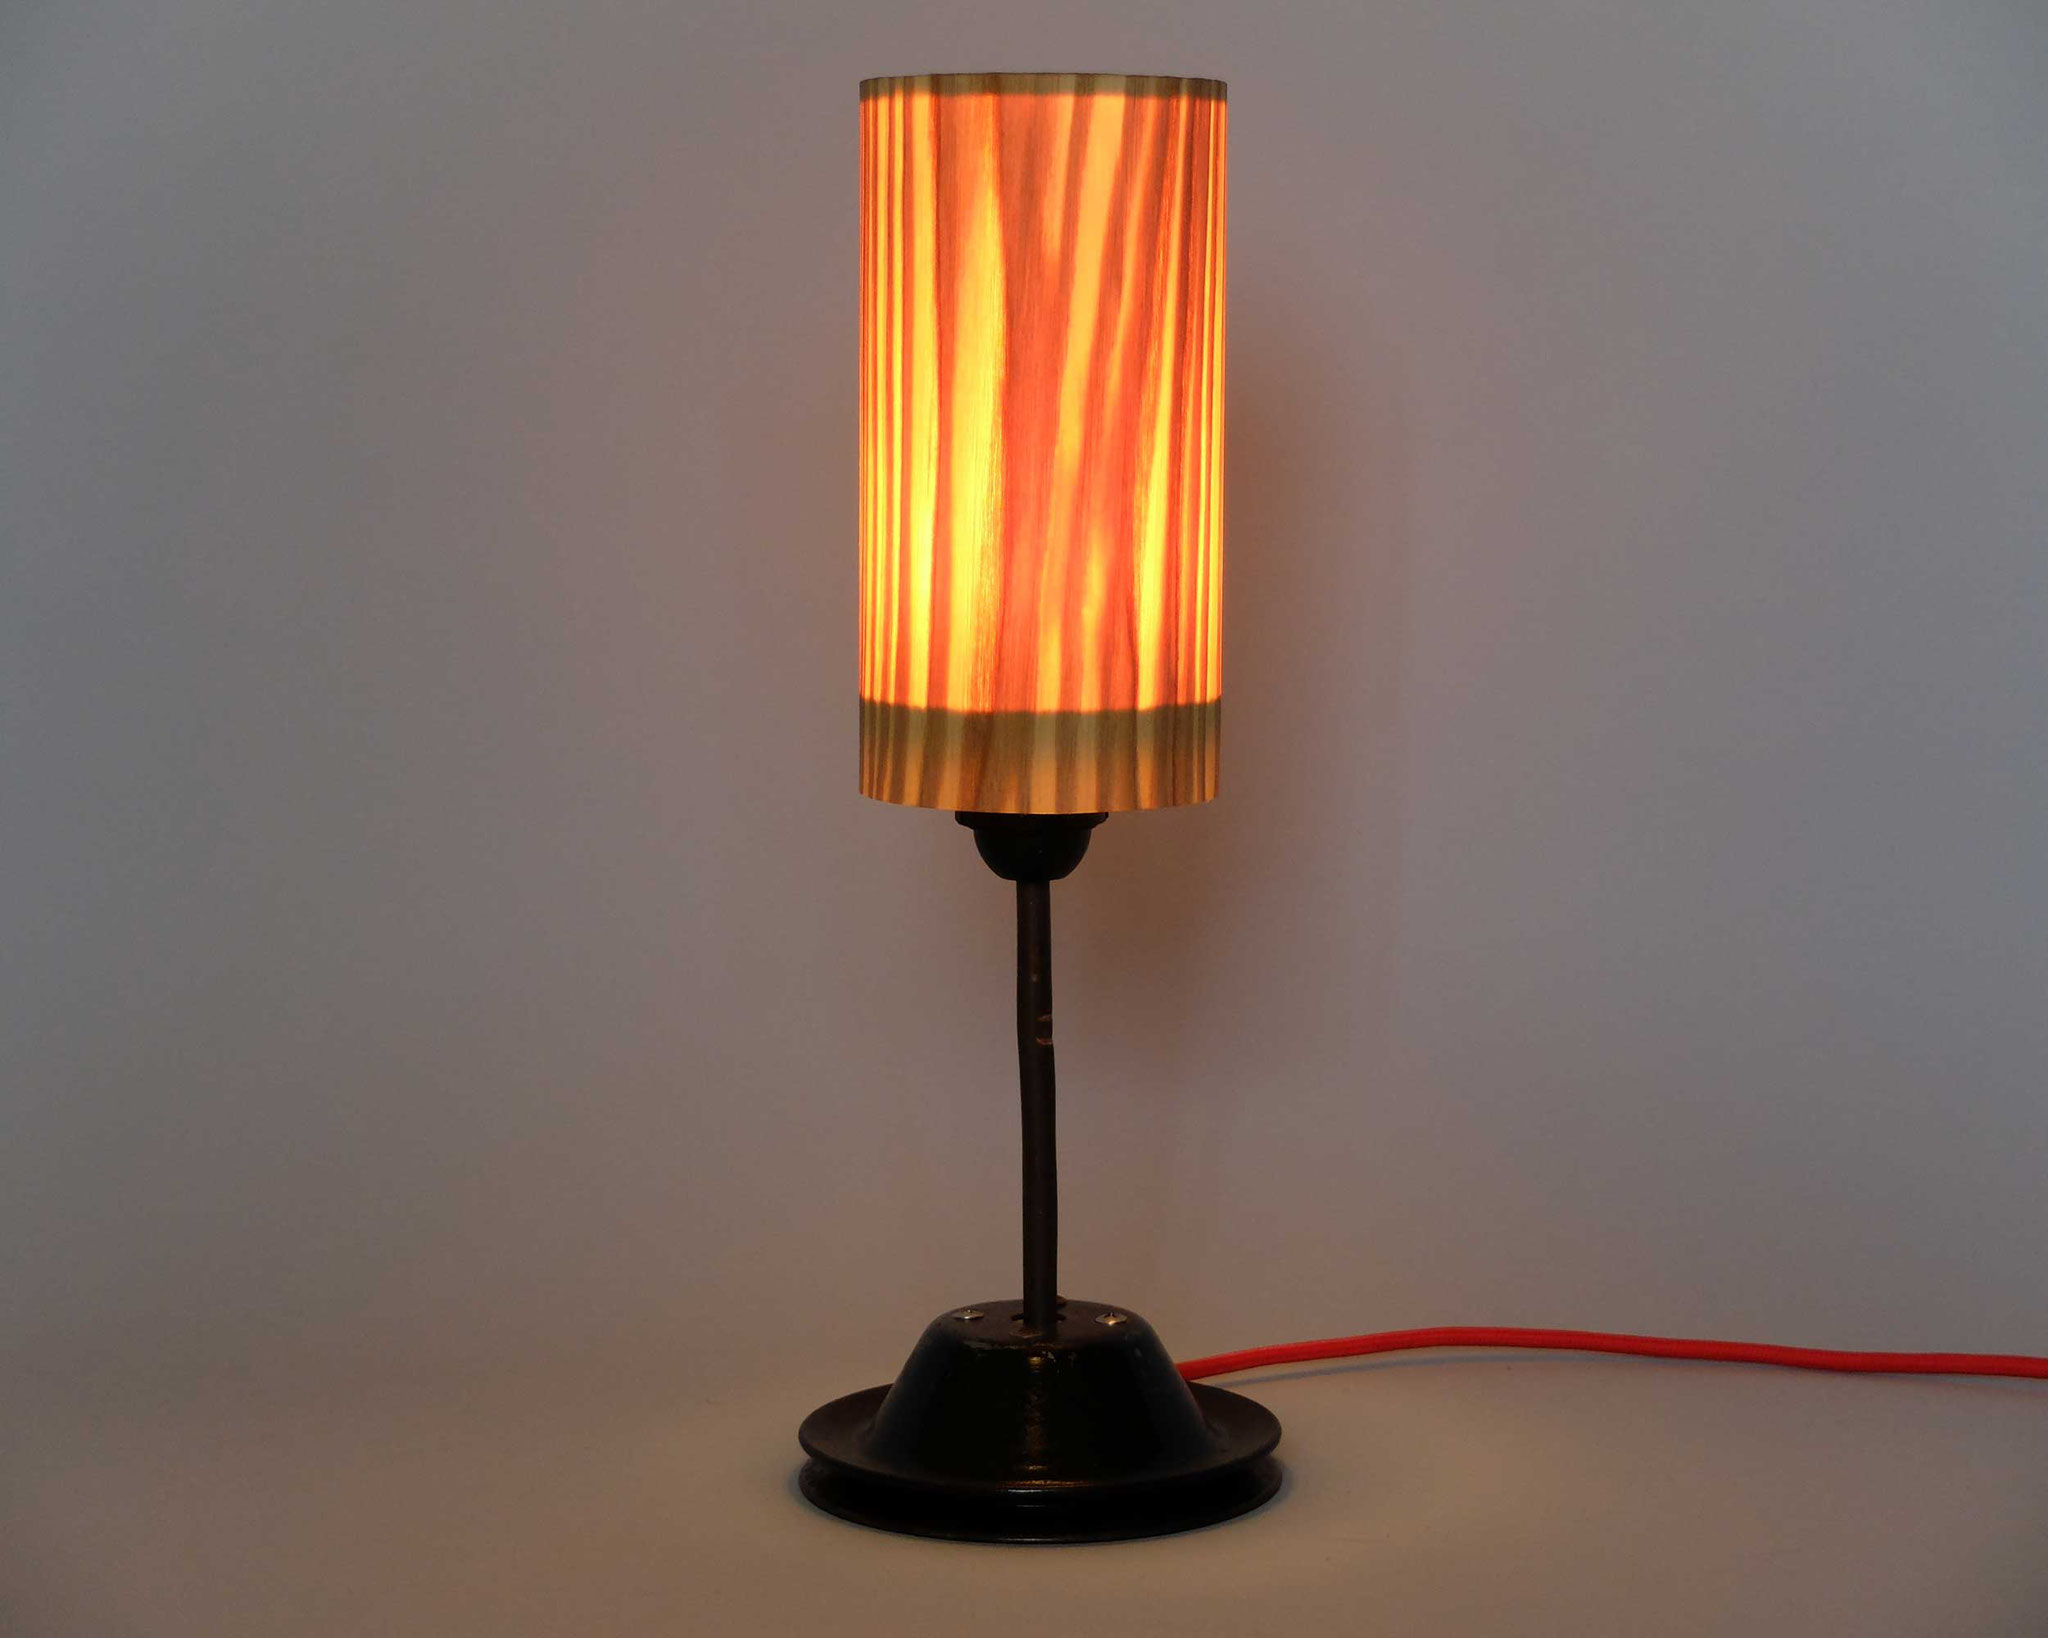 Upcycling Tischlampe Mensula